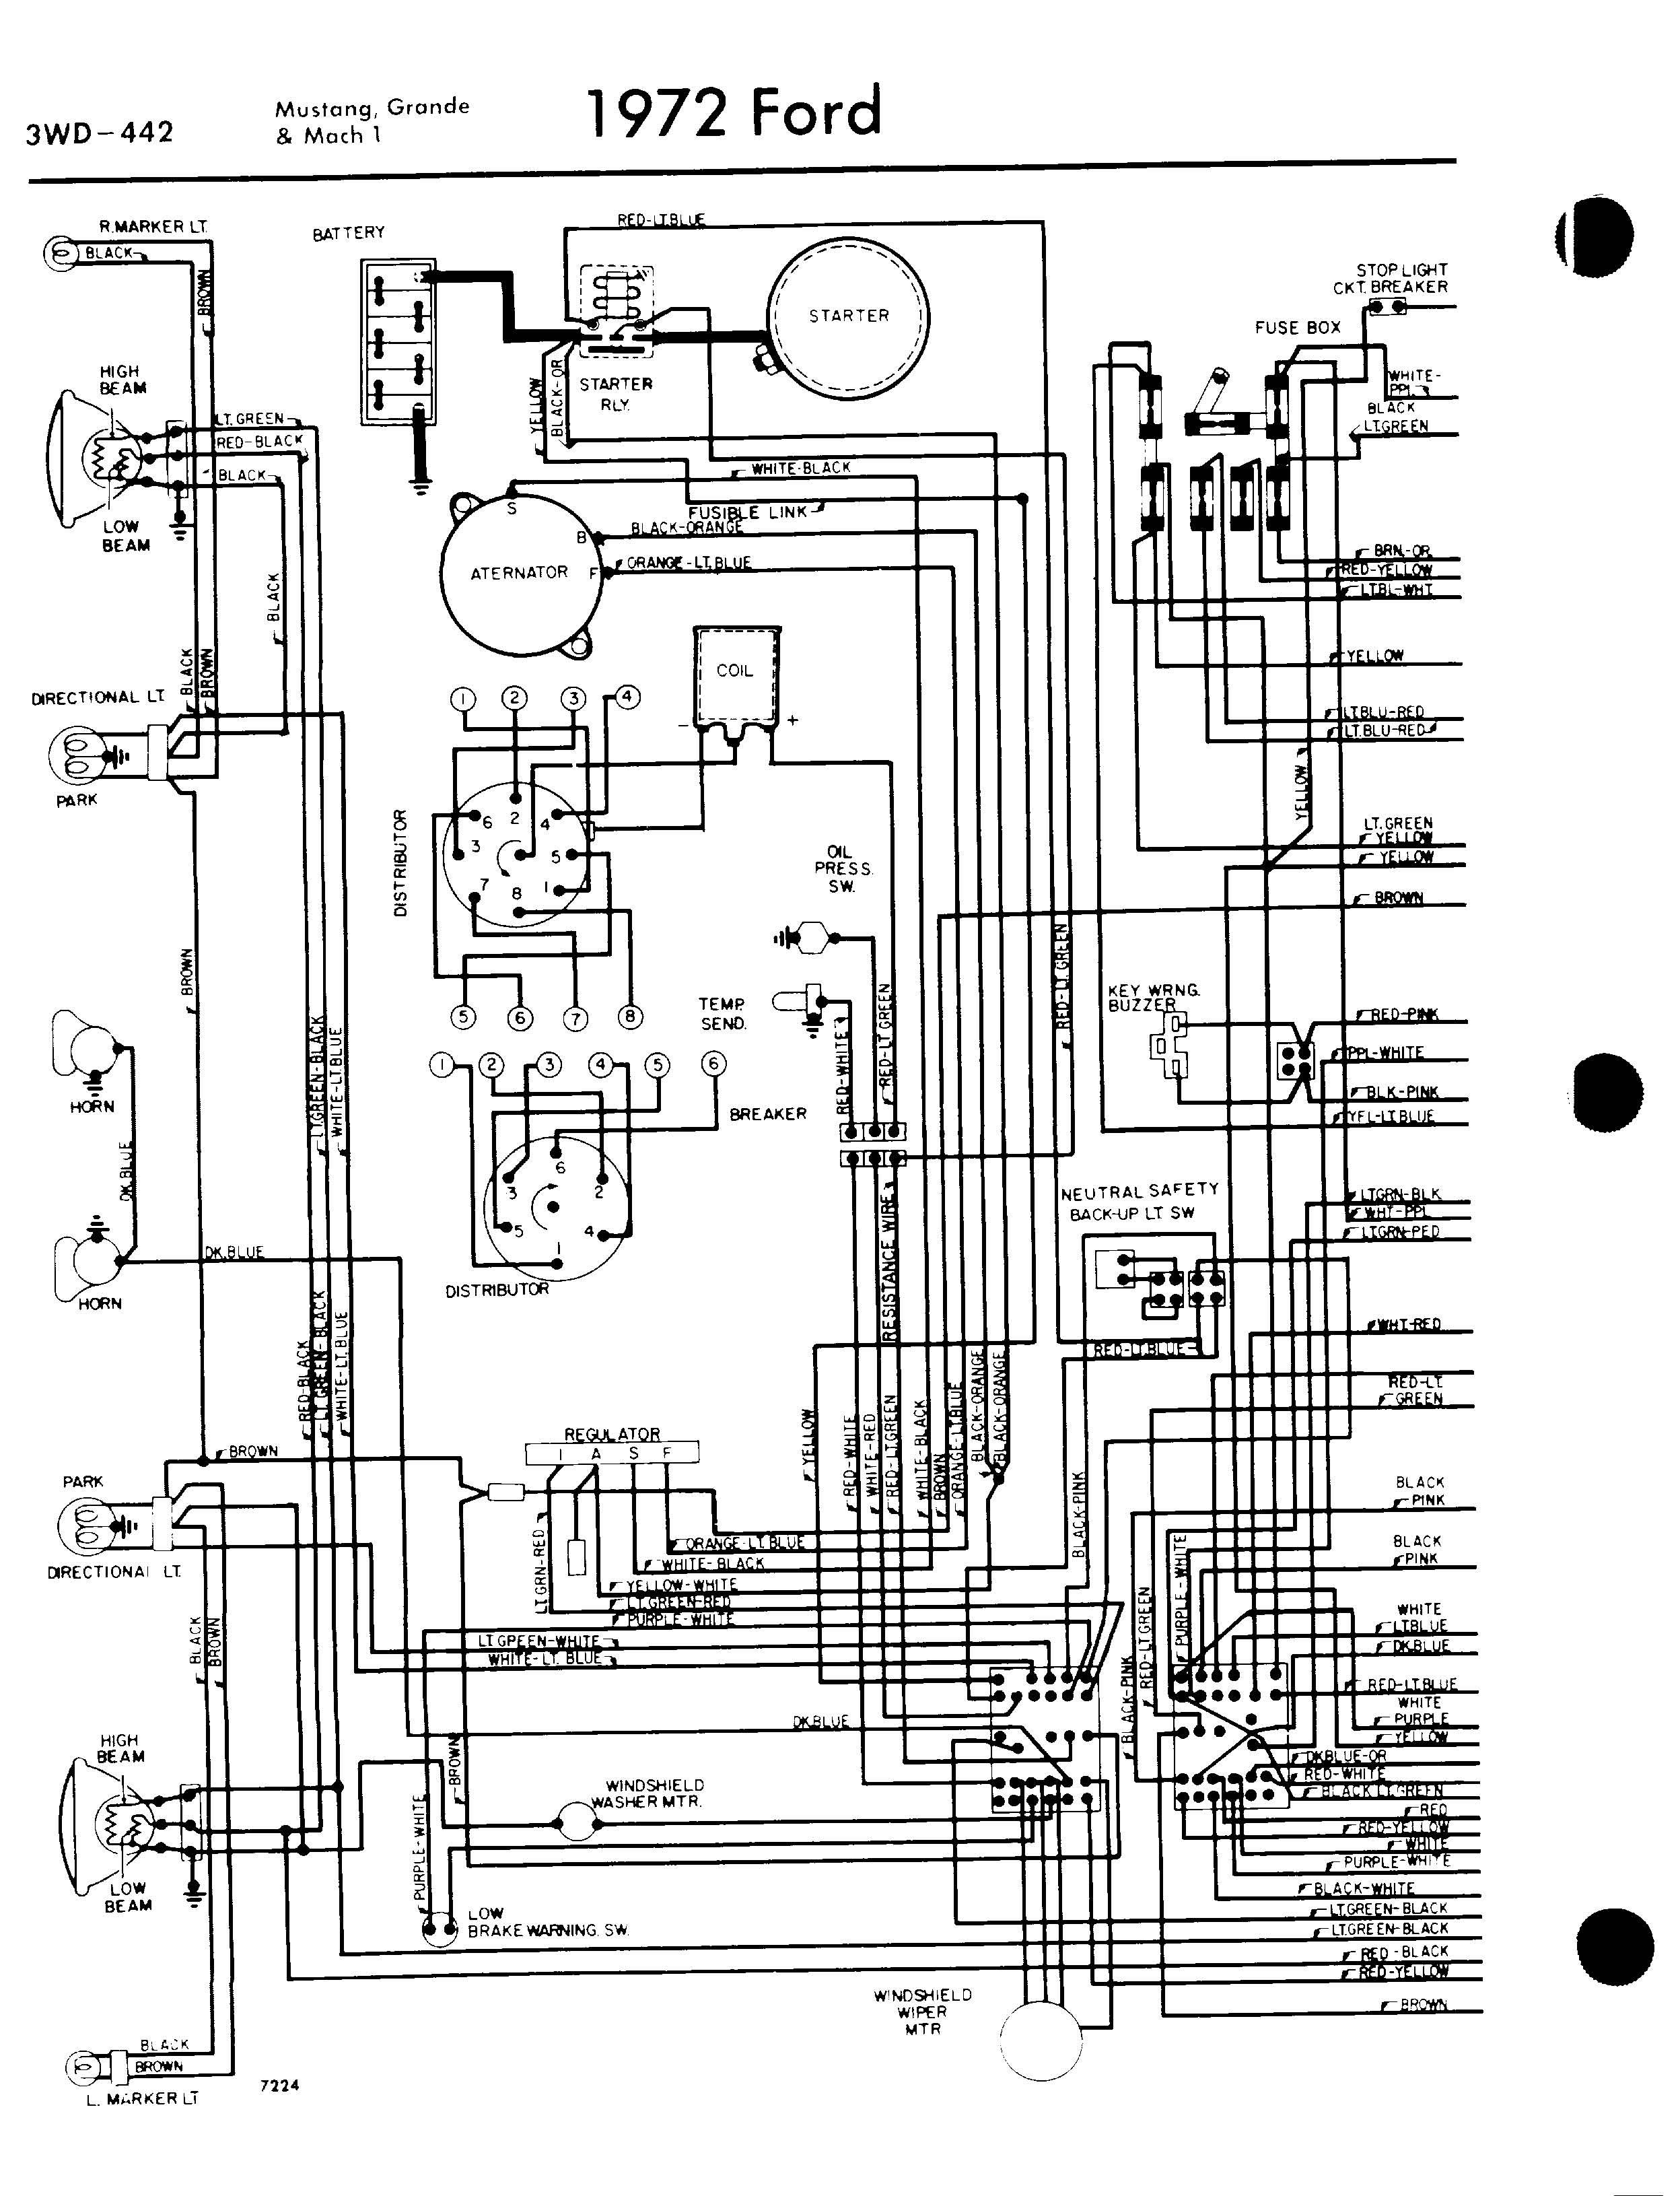 hight resolution of 1972 ford mustang engine wiring diagram wiring diagrams scematic 66 mustang alternator wiring diagram 1970 ford